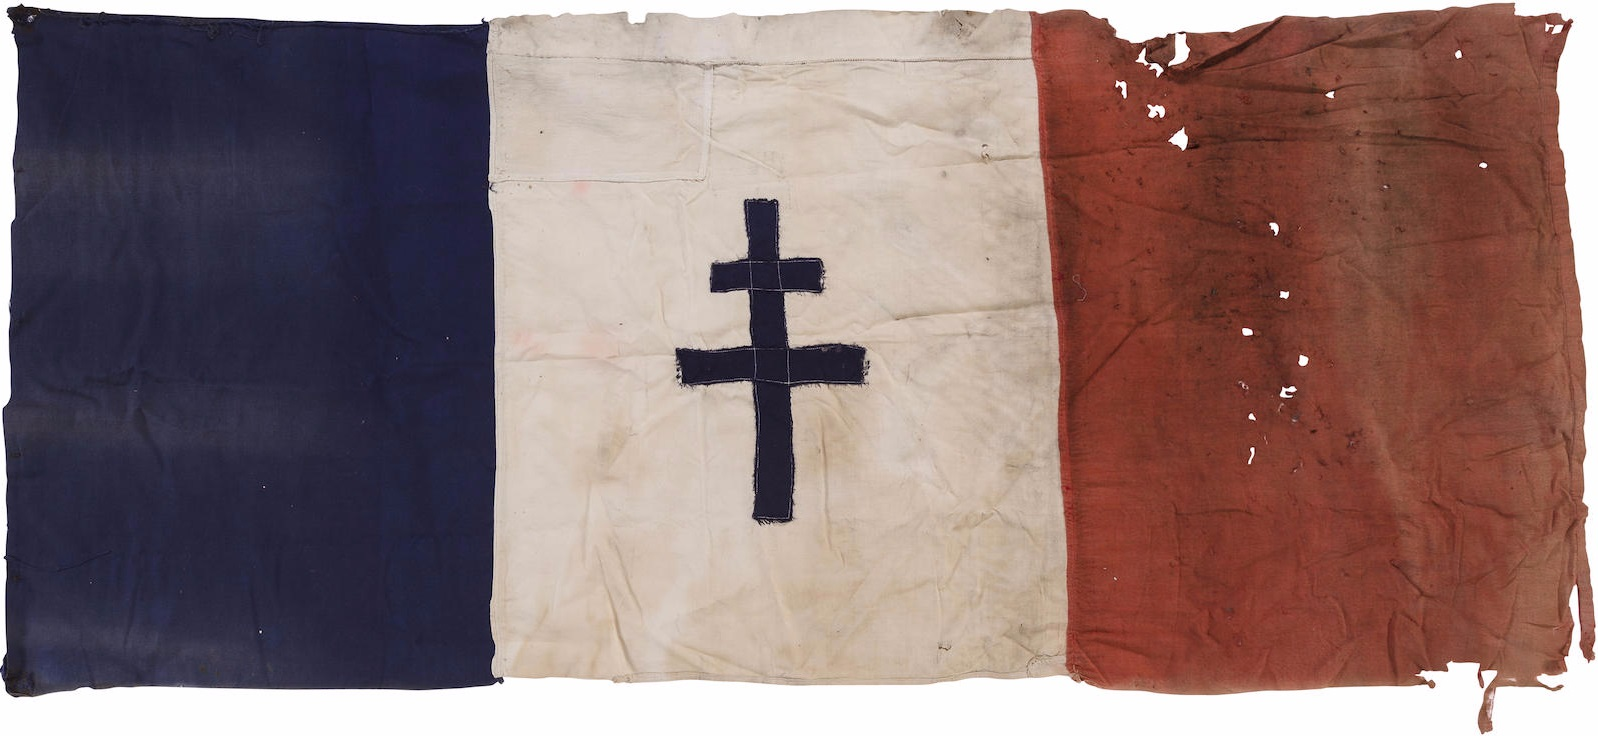 allies combat flags 15 amazing images of rare relics and their